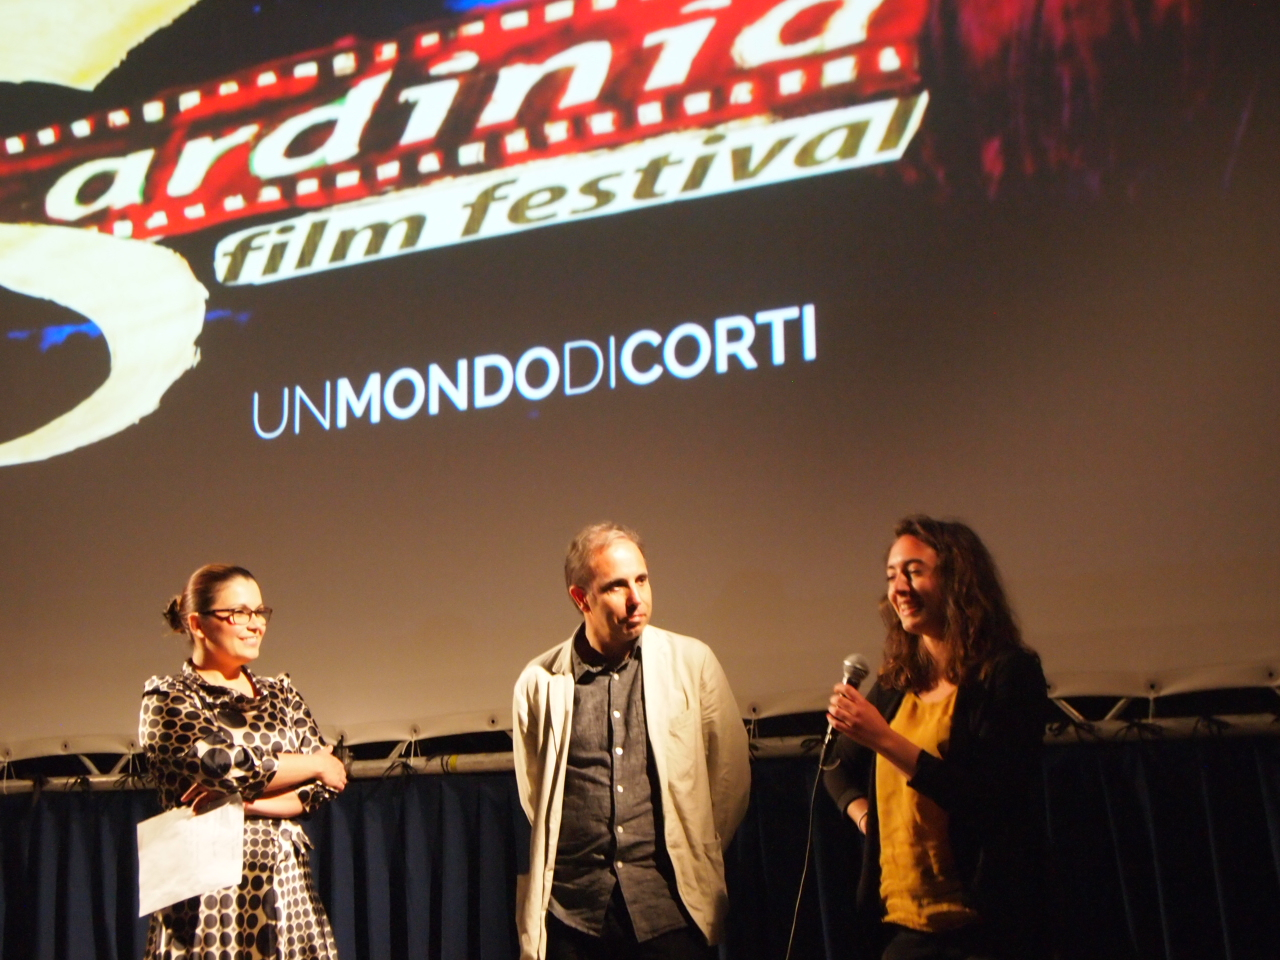 Edinburgh Short Film Festival at the Sardinia Film Festival